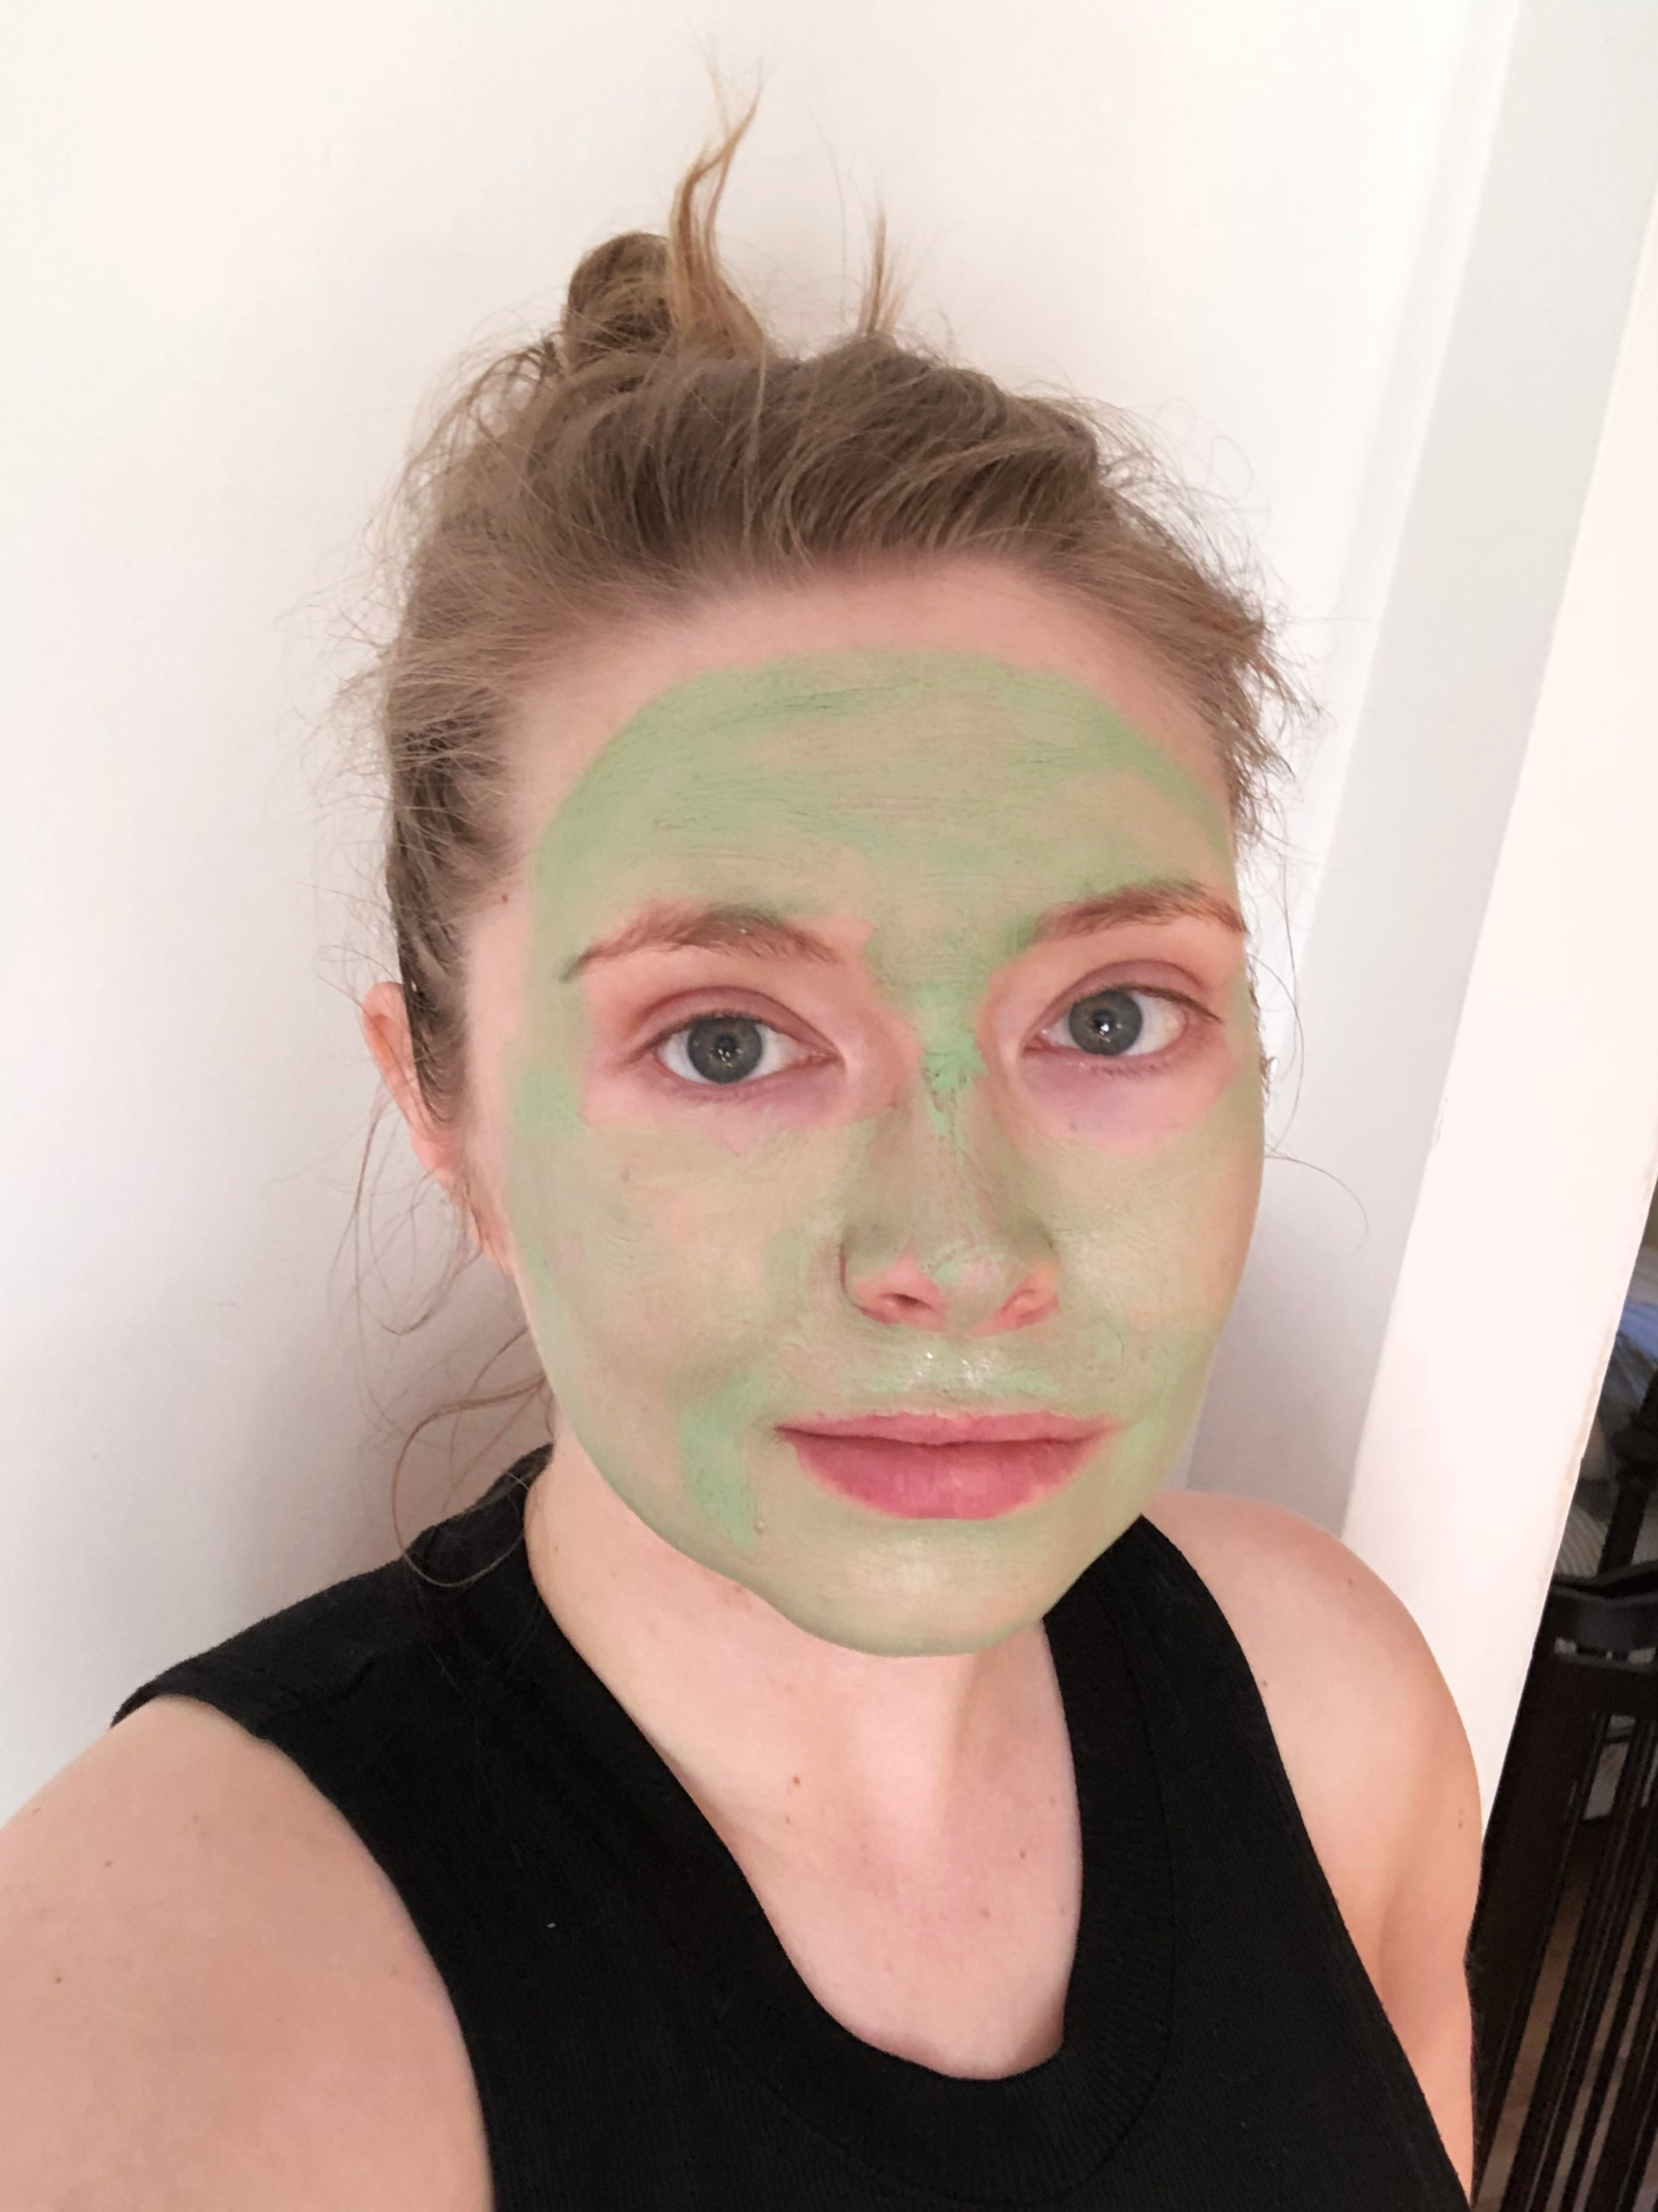 A photo of me, post-workout, masking away. So brave.